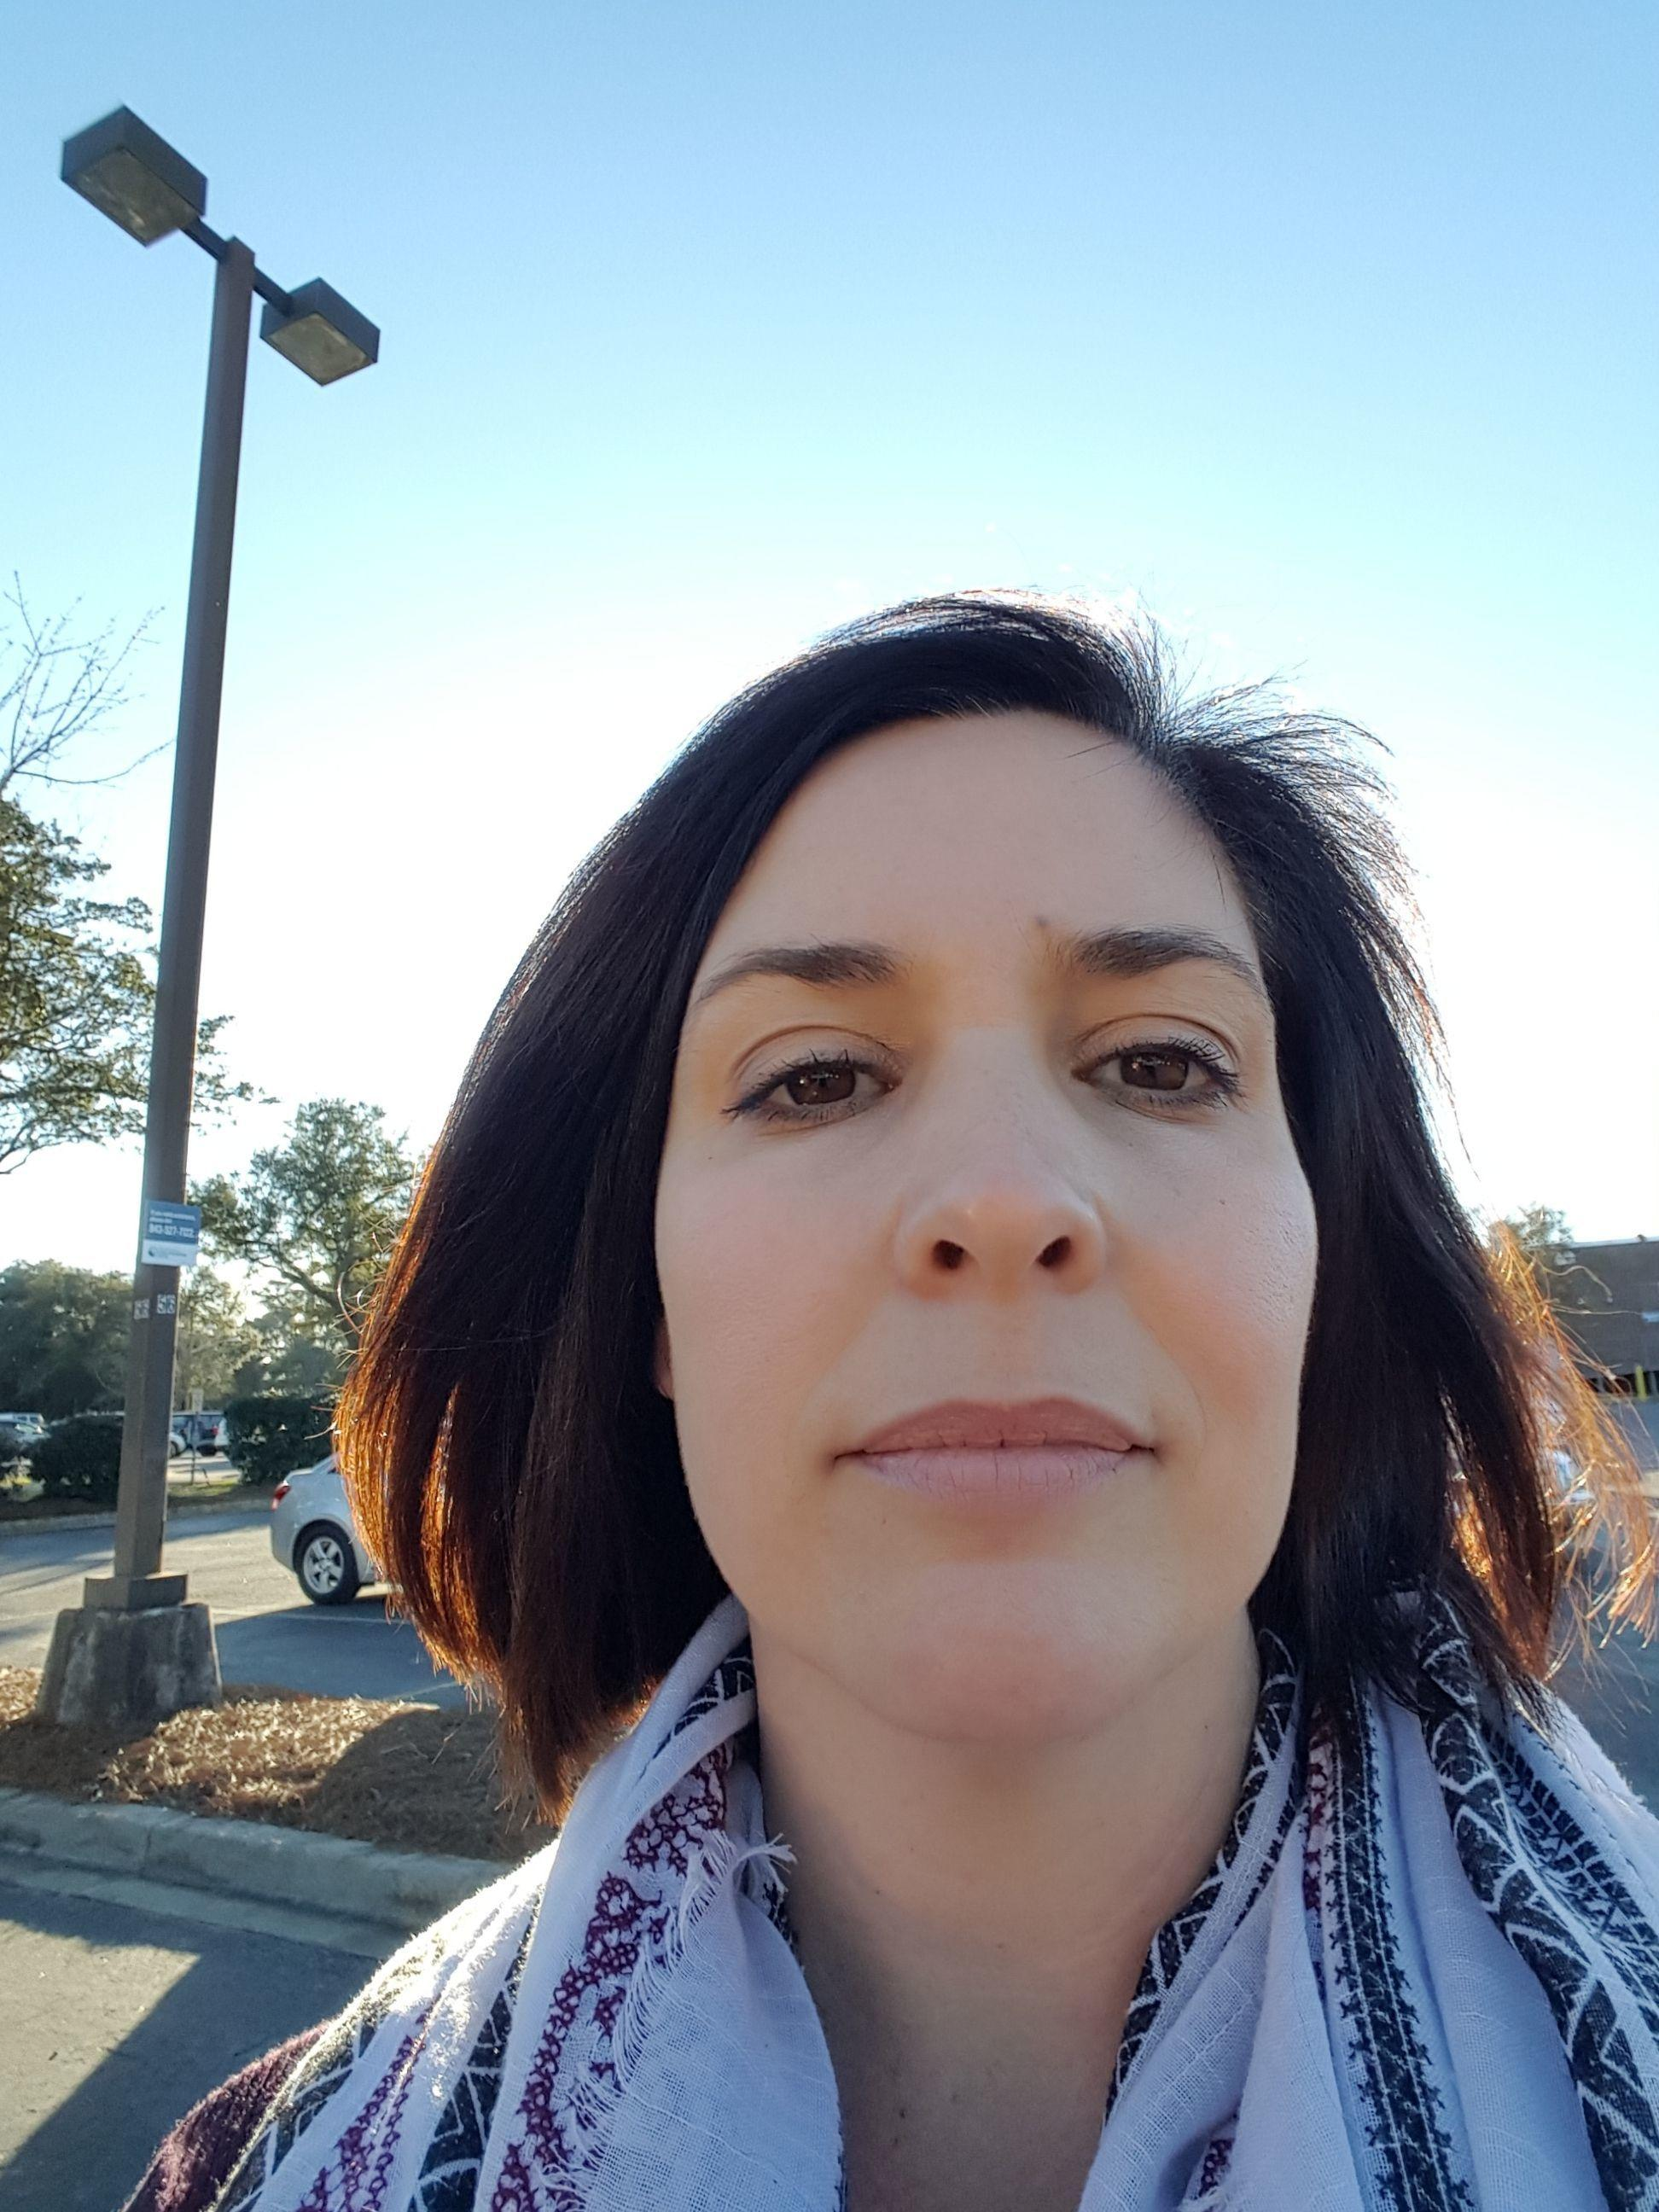 hispanic singles in lindsay Search for local single senior women in california online dating brings singles together who may never otherwise coollanita lindsay, ca latino / hispanic.